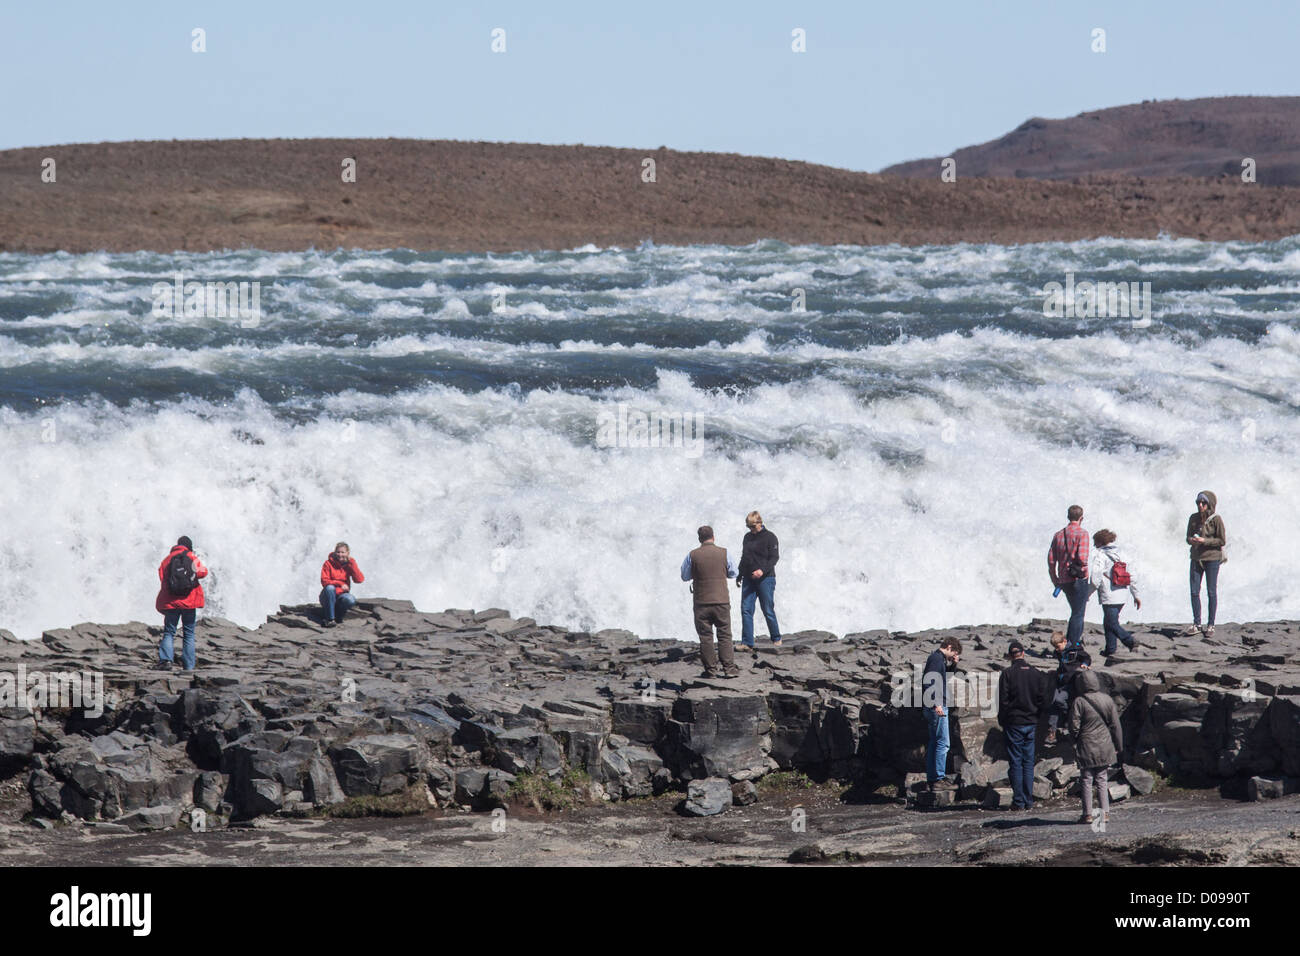 TOURISTS IN FRONT OF THE GULLFOSS FALLS A 32-METRE HIGH WATERFALL REGION OF THE GOLDEN CIRCLE ICELAND - Stock Image